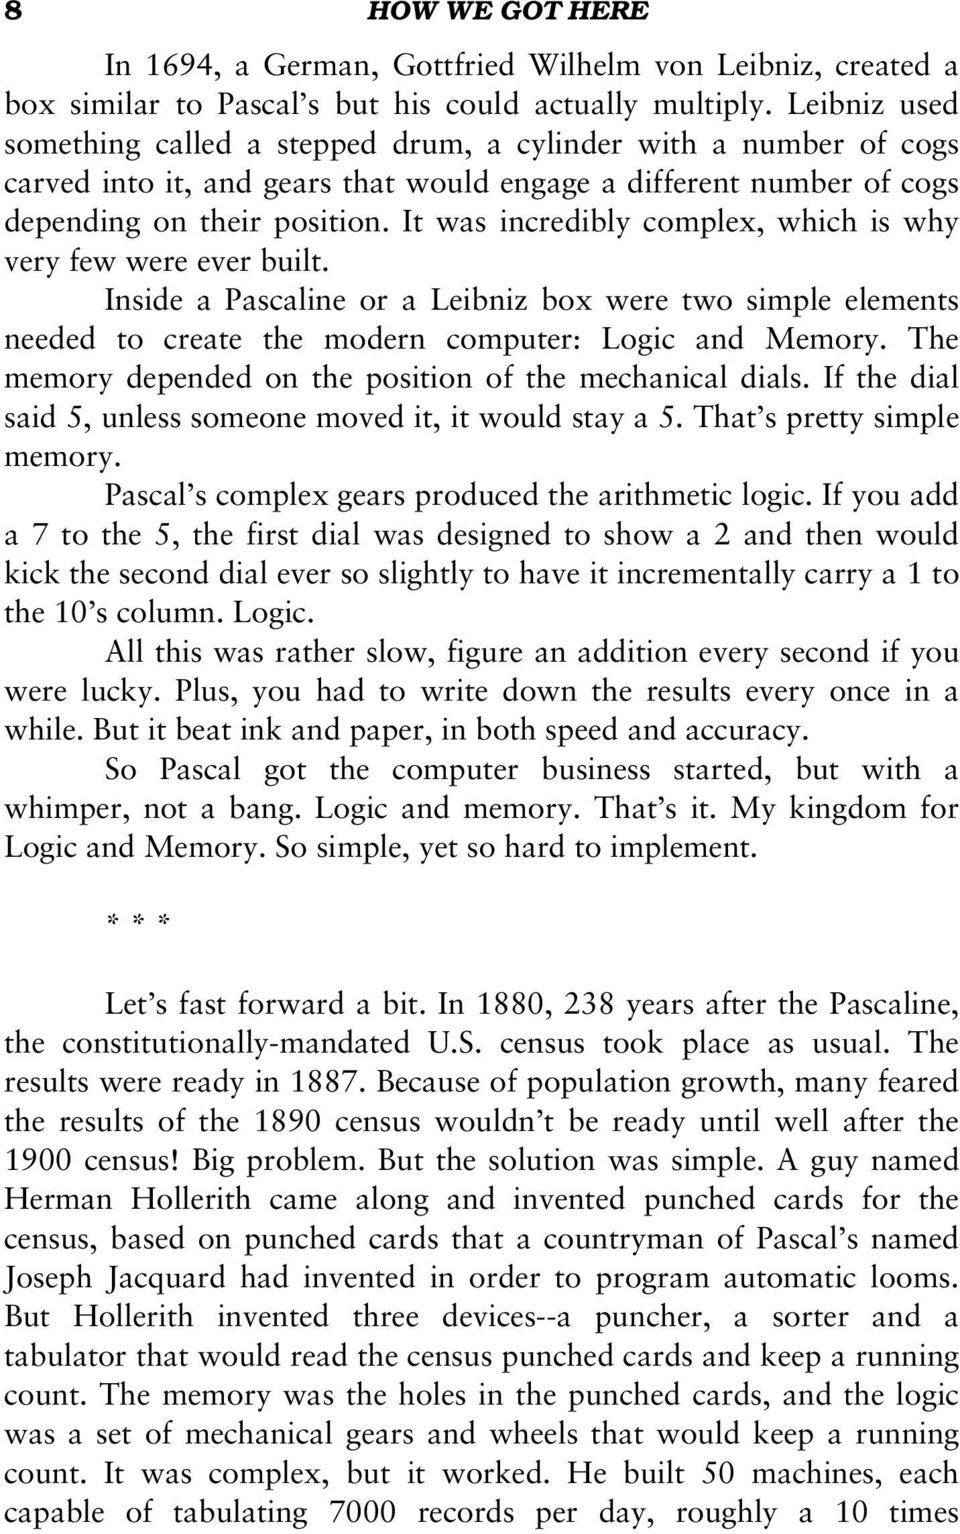 It was incredibly complex, which is why very few were ever built. Inside a Pascaline or a Leibniz box were two simple elements needed to create the modern computer: Logic and Memory.